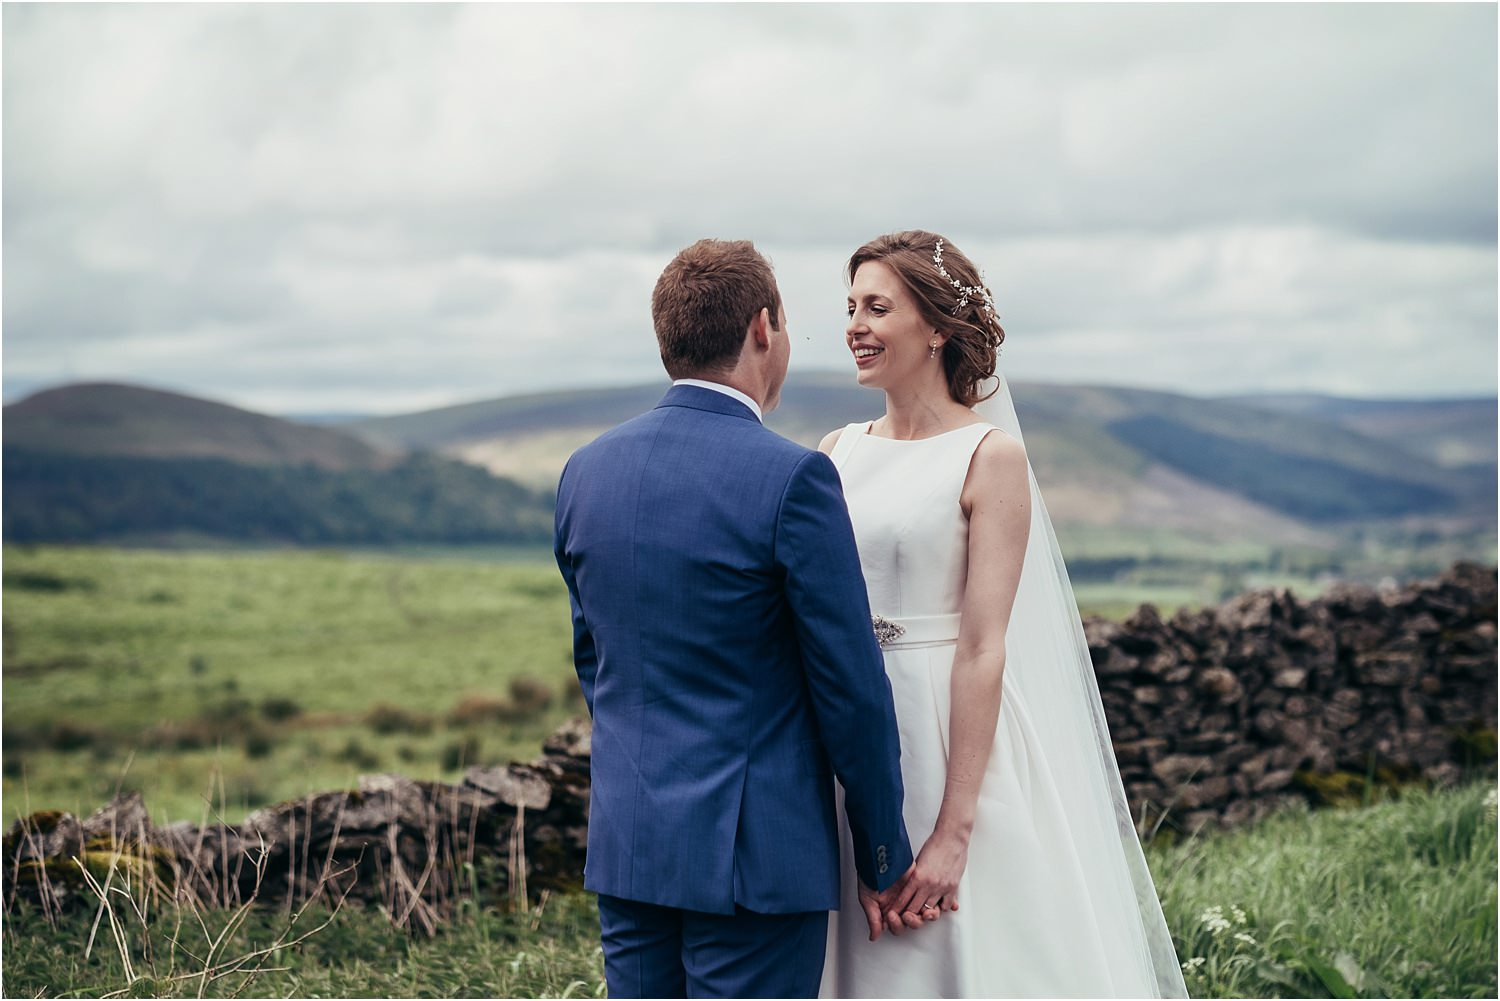 A close moment between bride and groom after Trough of Bowland wedding